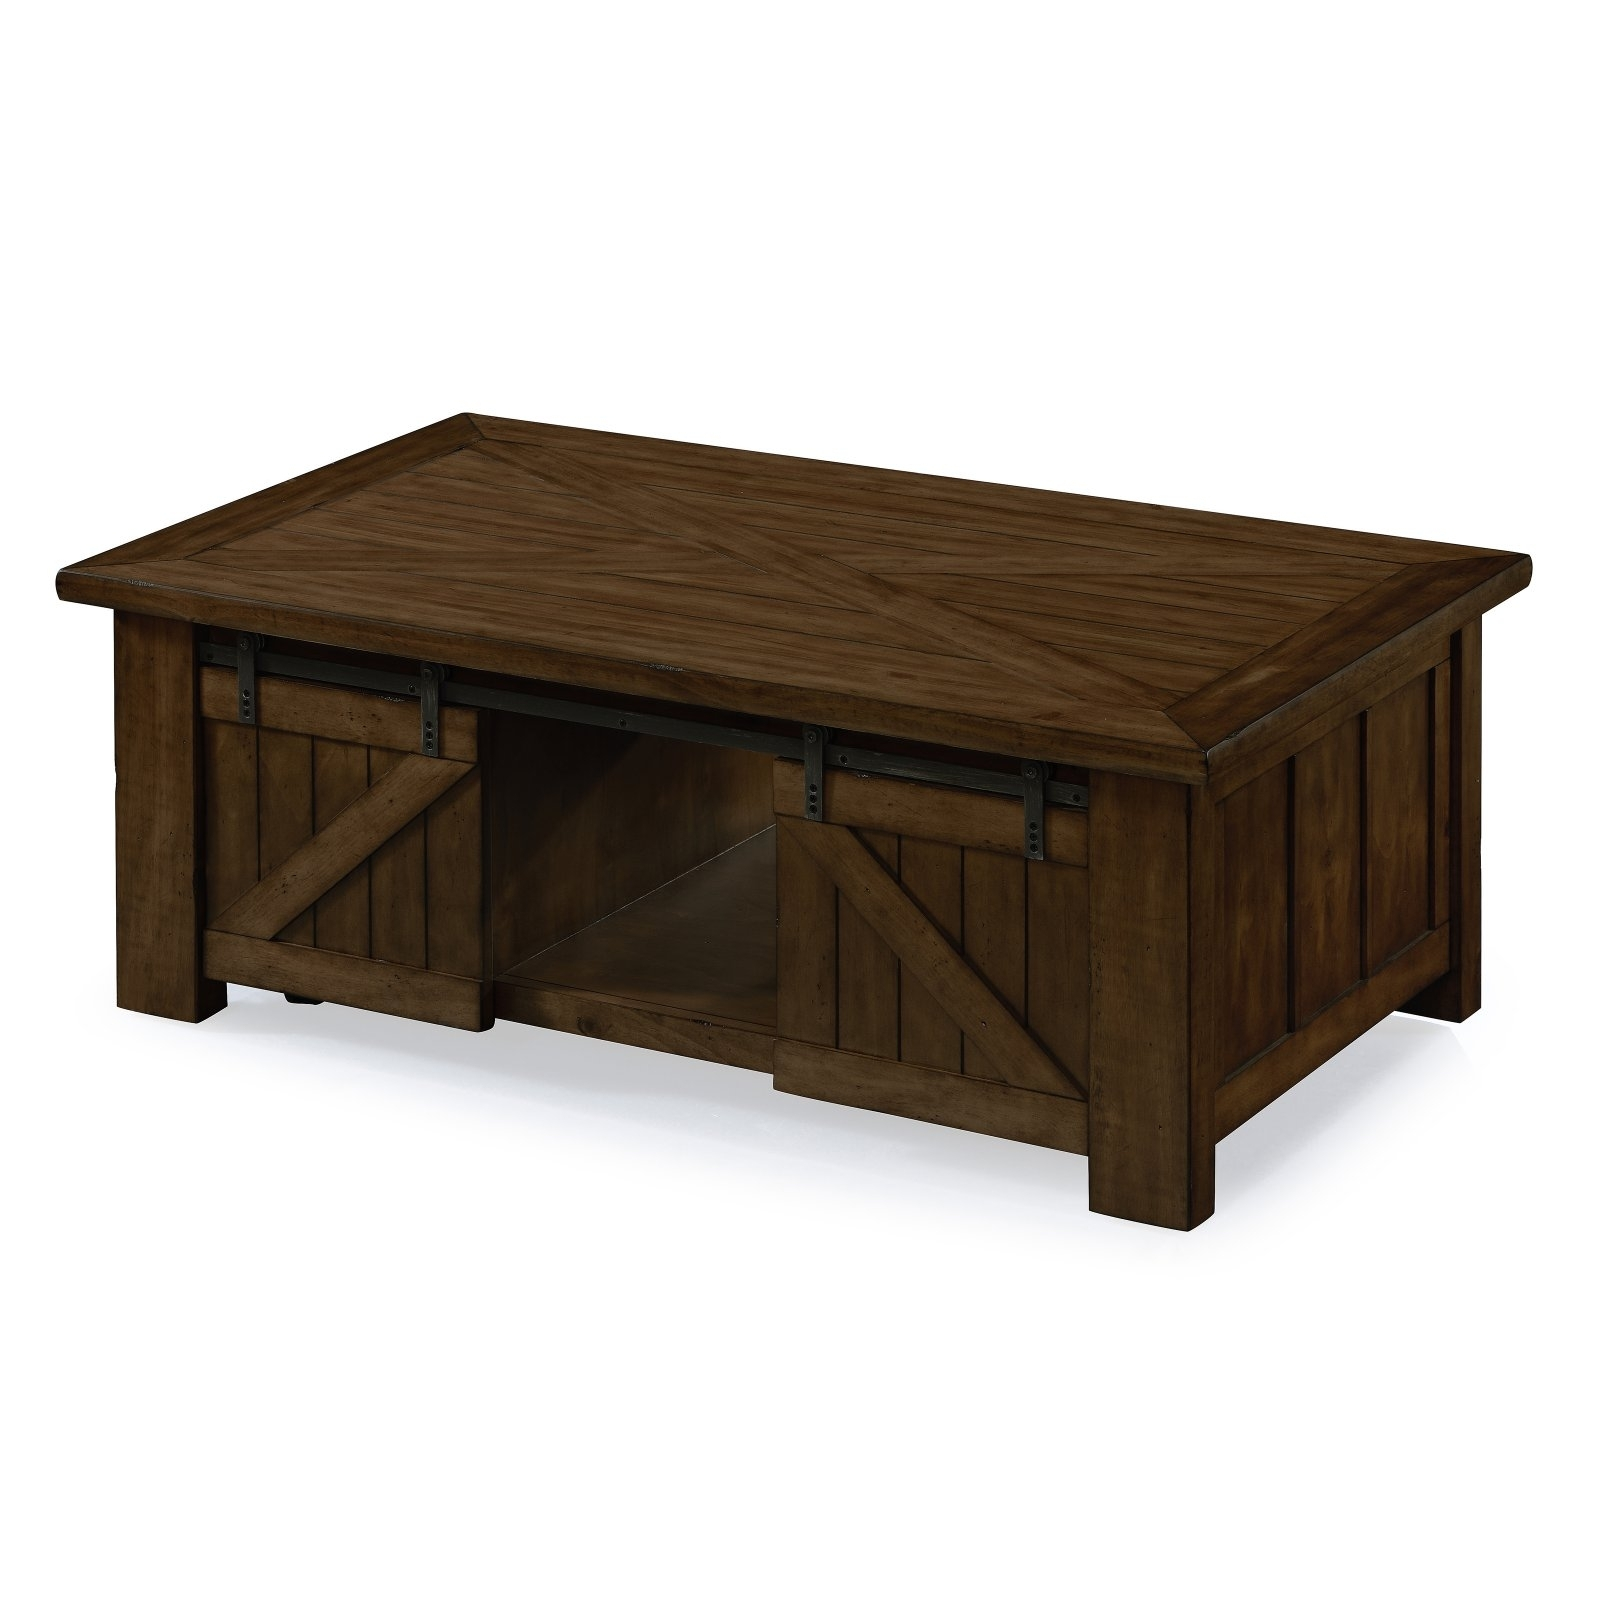 Magnussen Fraser Rectangular Cocktail Table With Casters – Walmart Pertaining To 2018 Ontario Cocktail Tables With Casters (View 15 of 20)